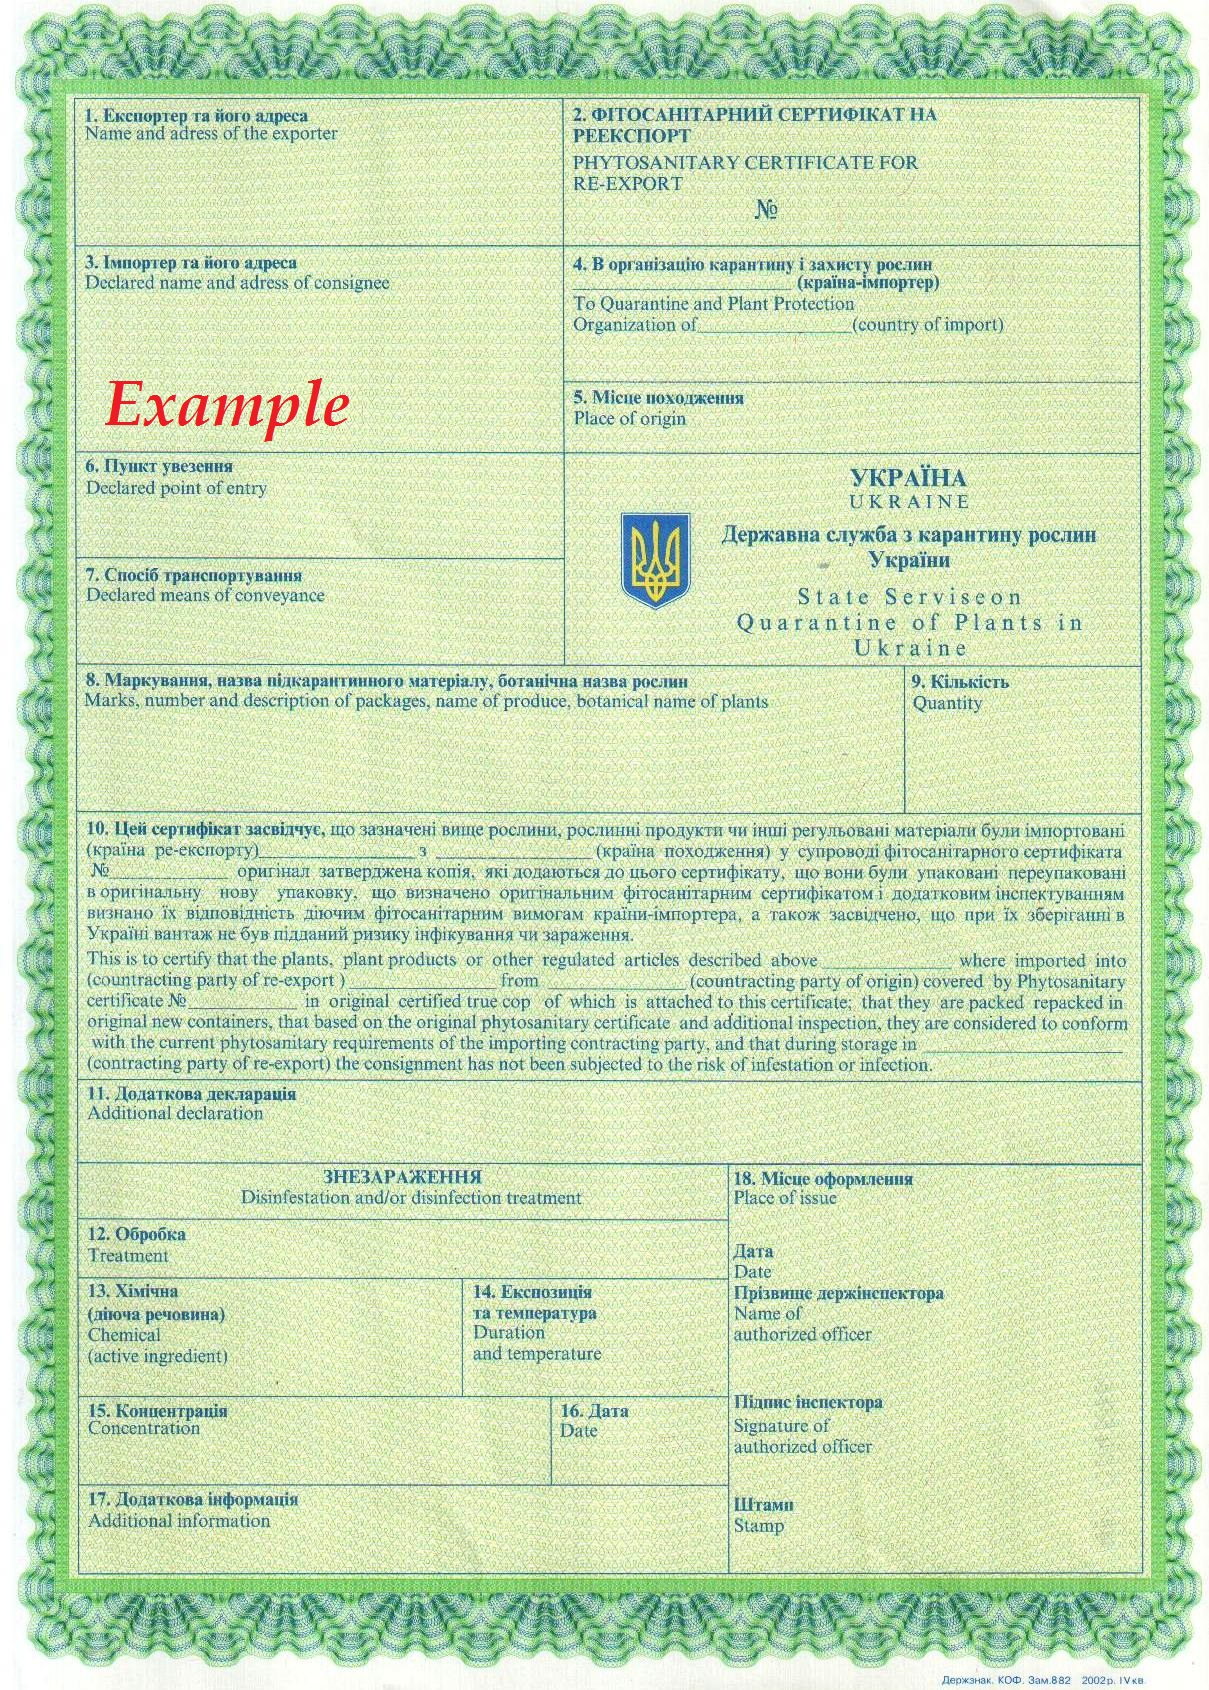 cfia phytosanitary certificate application form